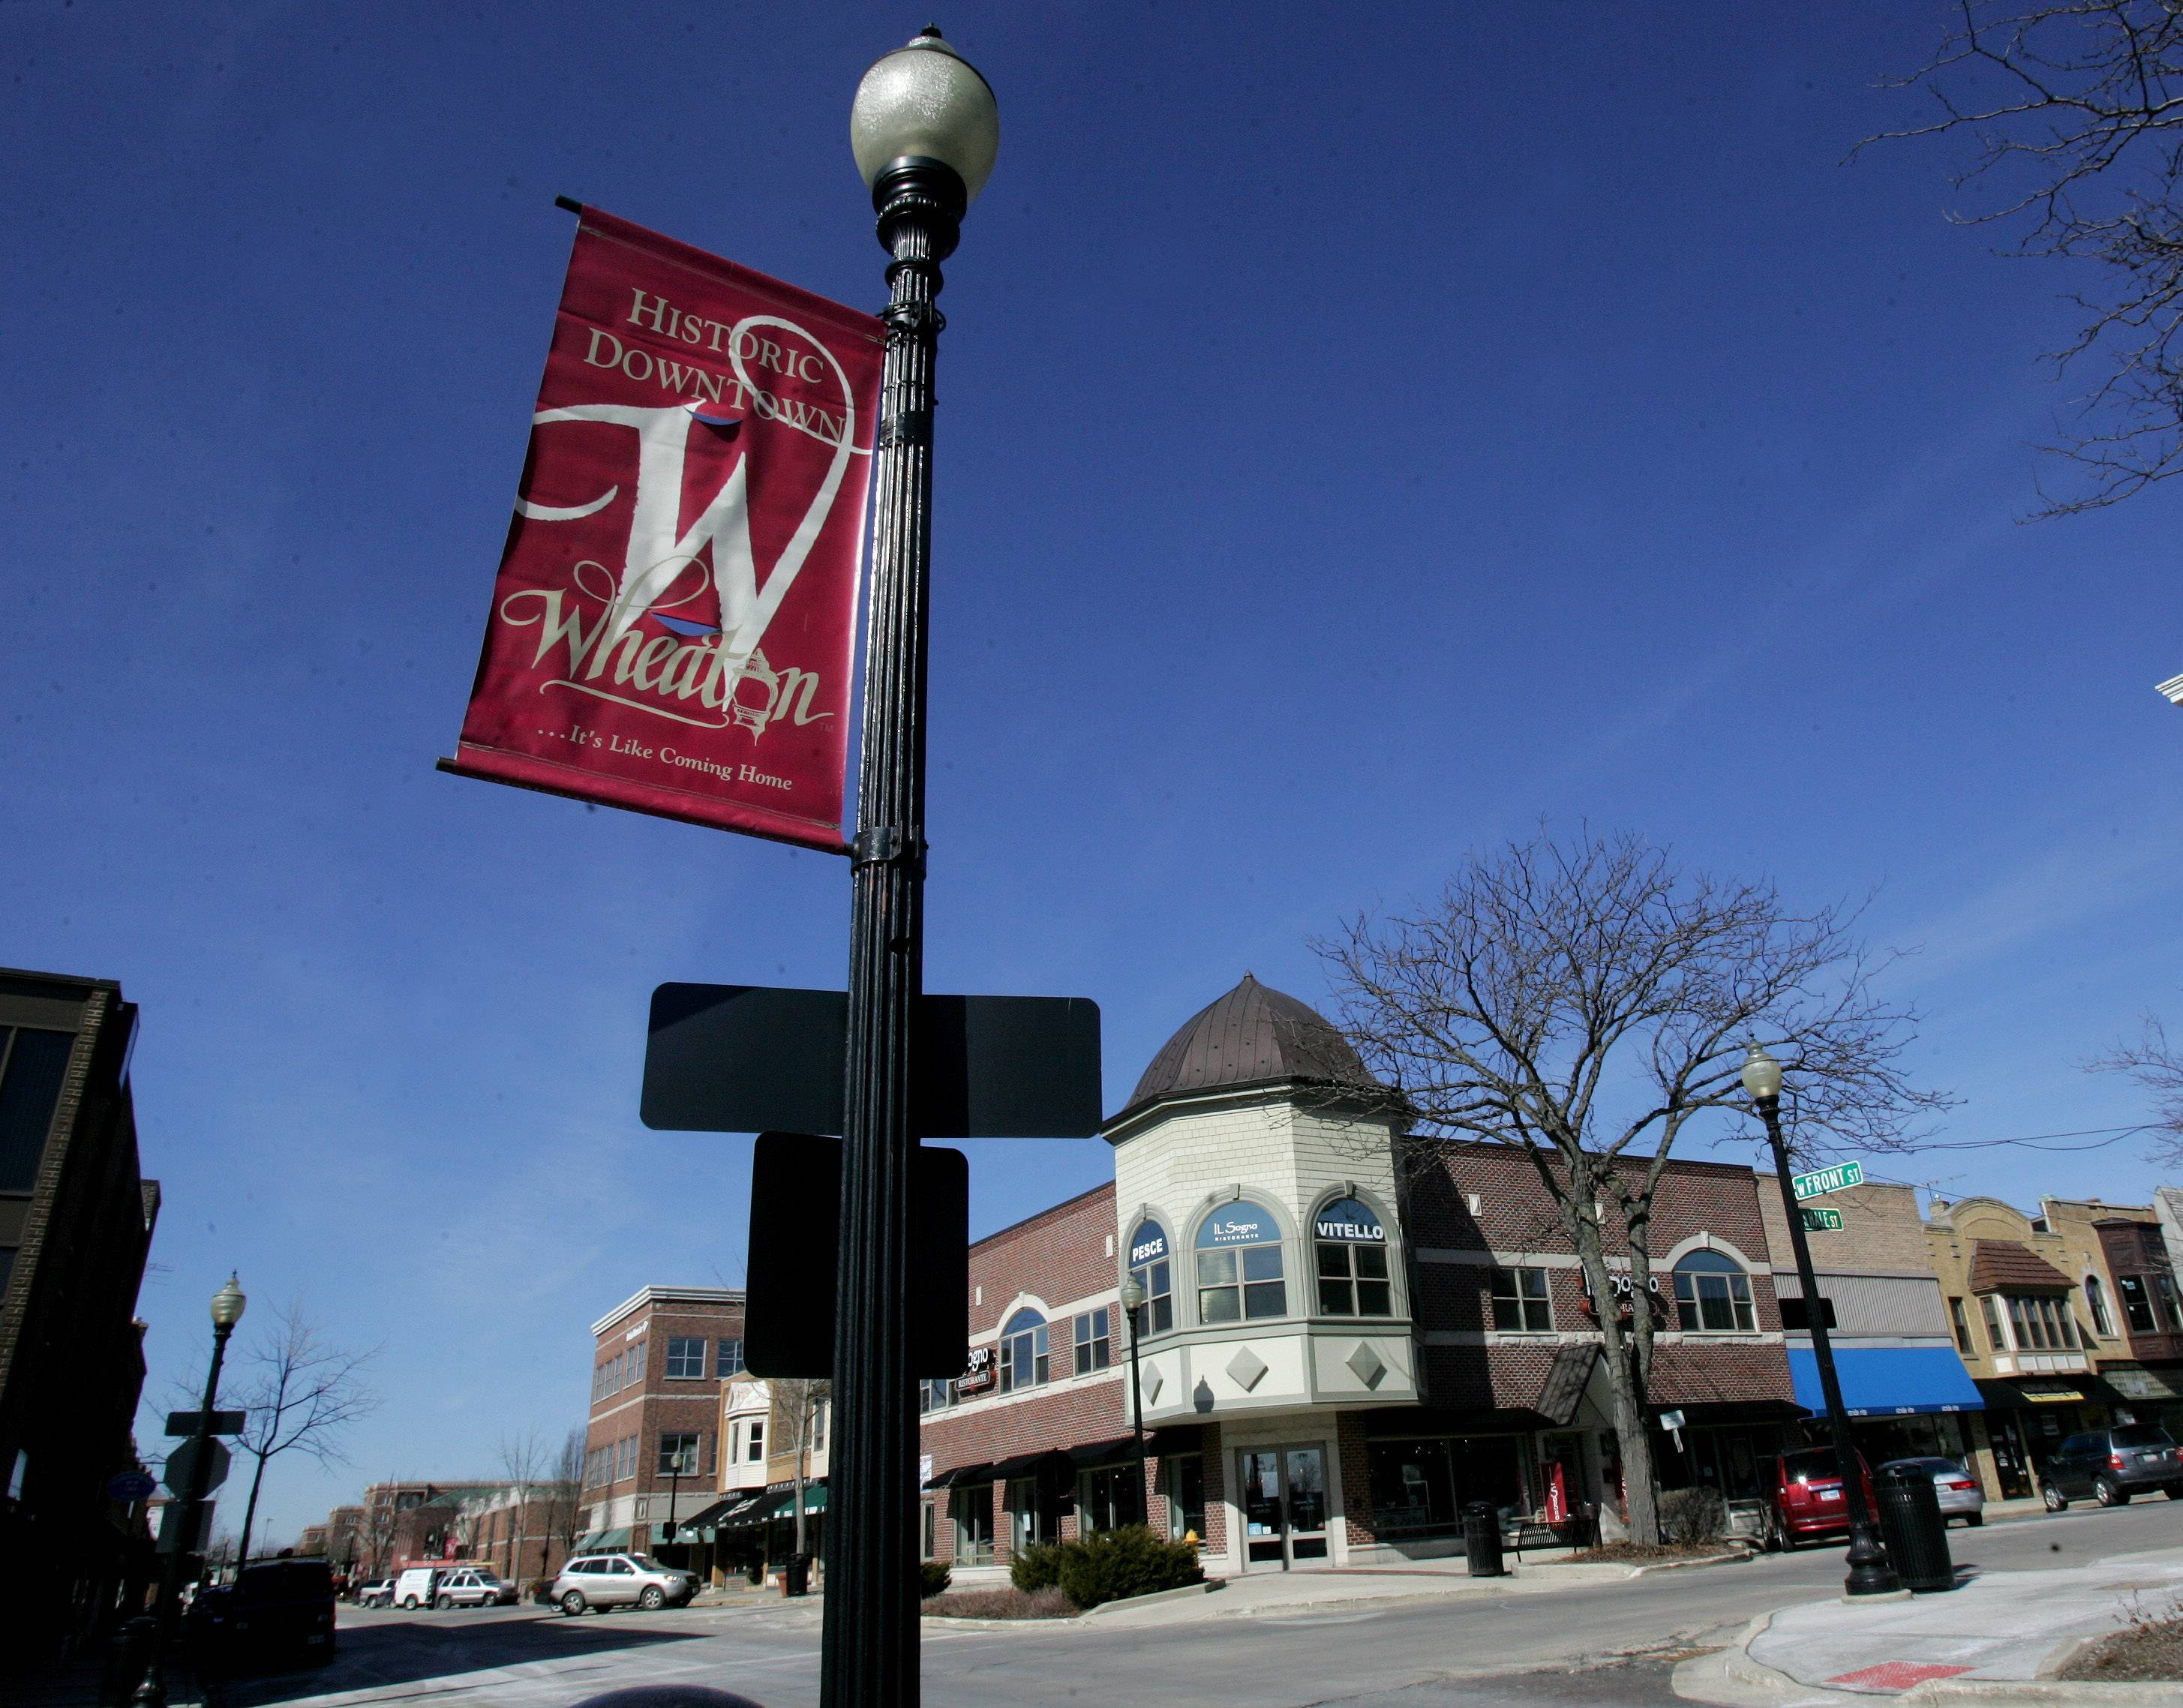 The Downtown Wheaton Association has requested $41,000 in city funding for fiscal 2014-15 to make up for a revenue shortfall.